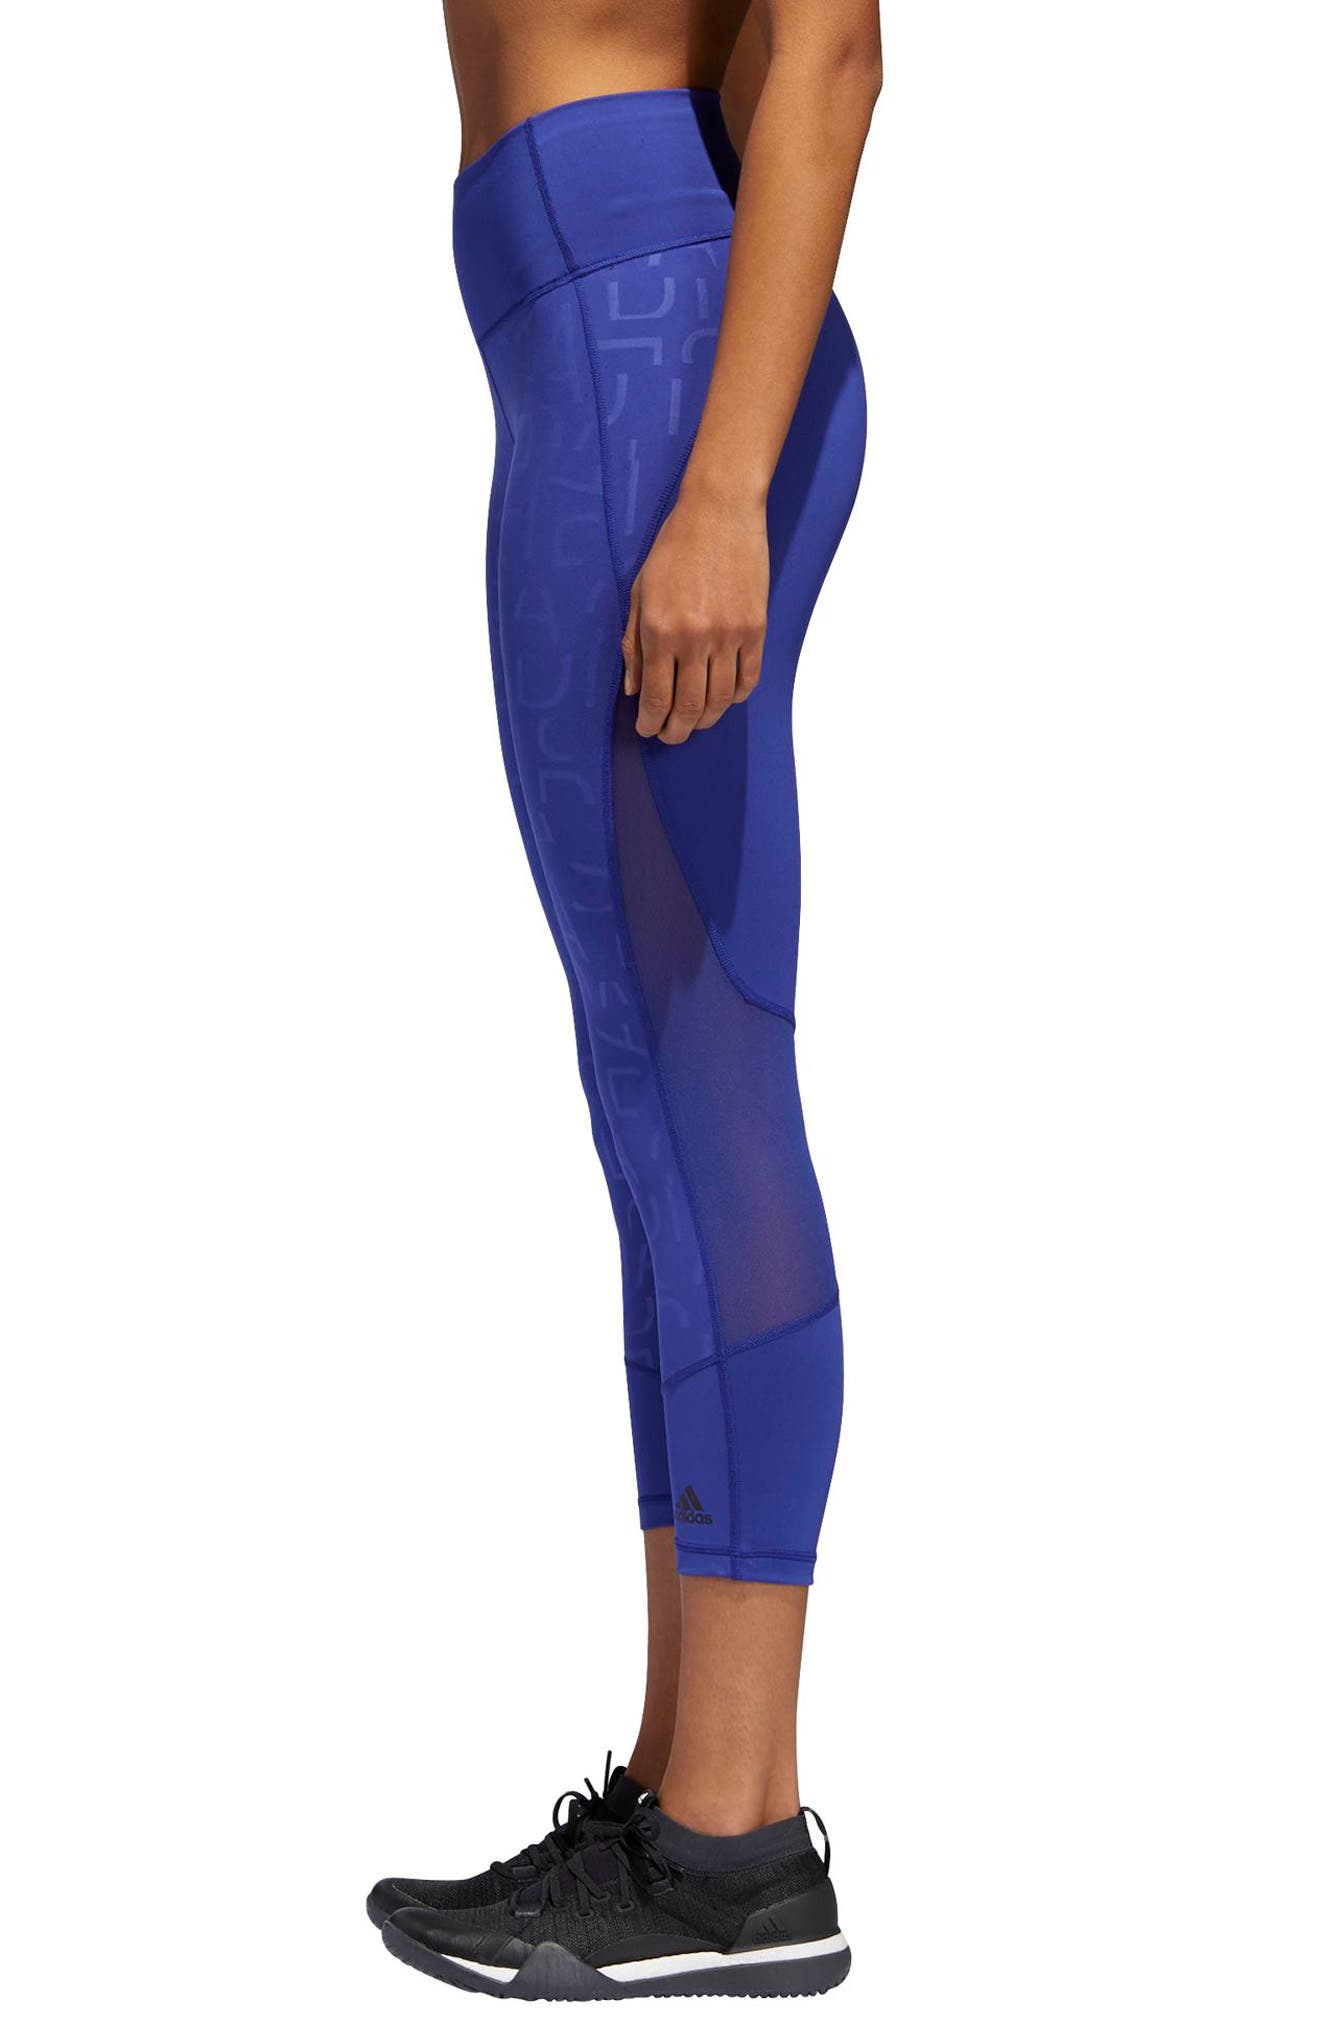 Adihack Crop Tights,                             Alternate thumbnail 3, color,                             500